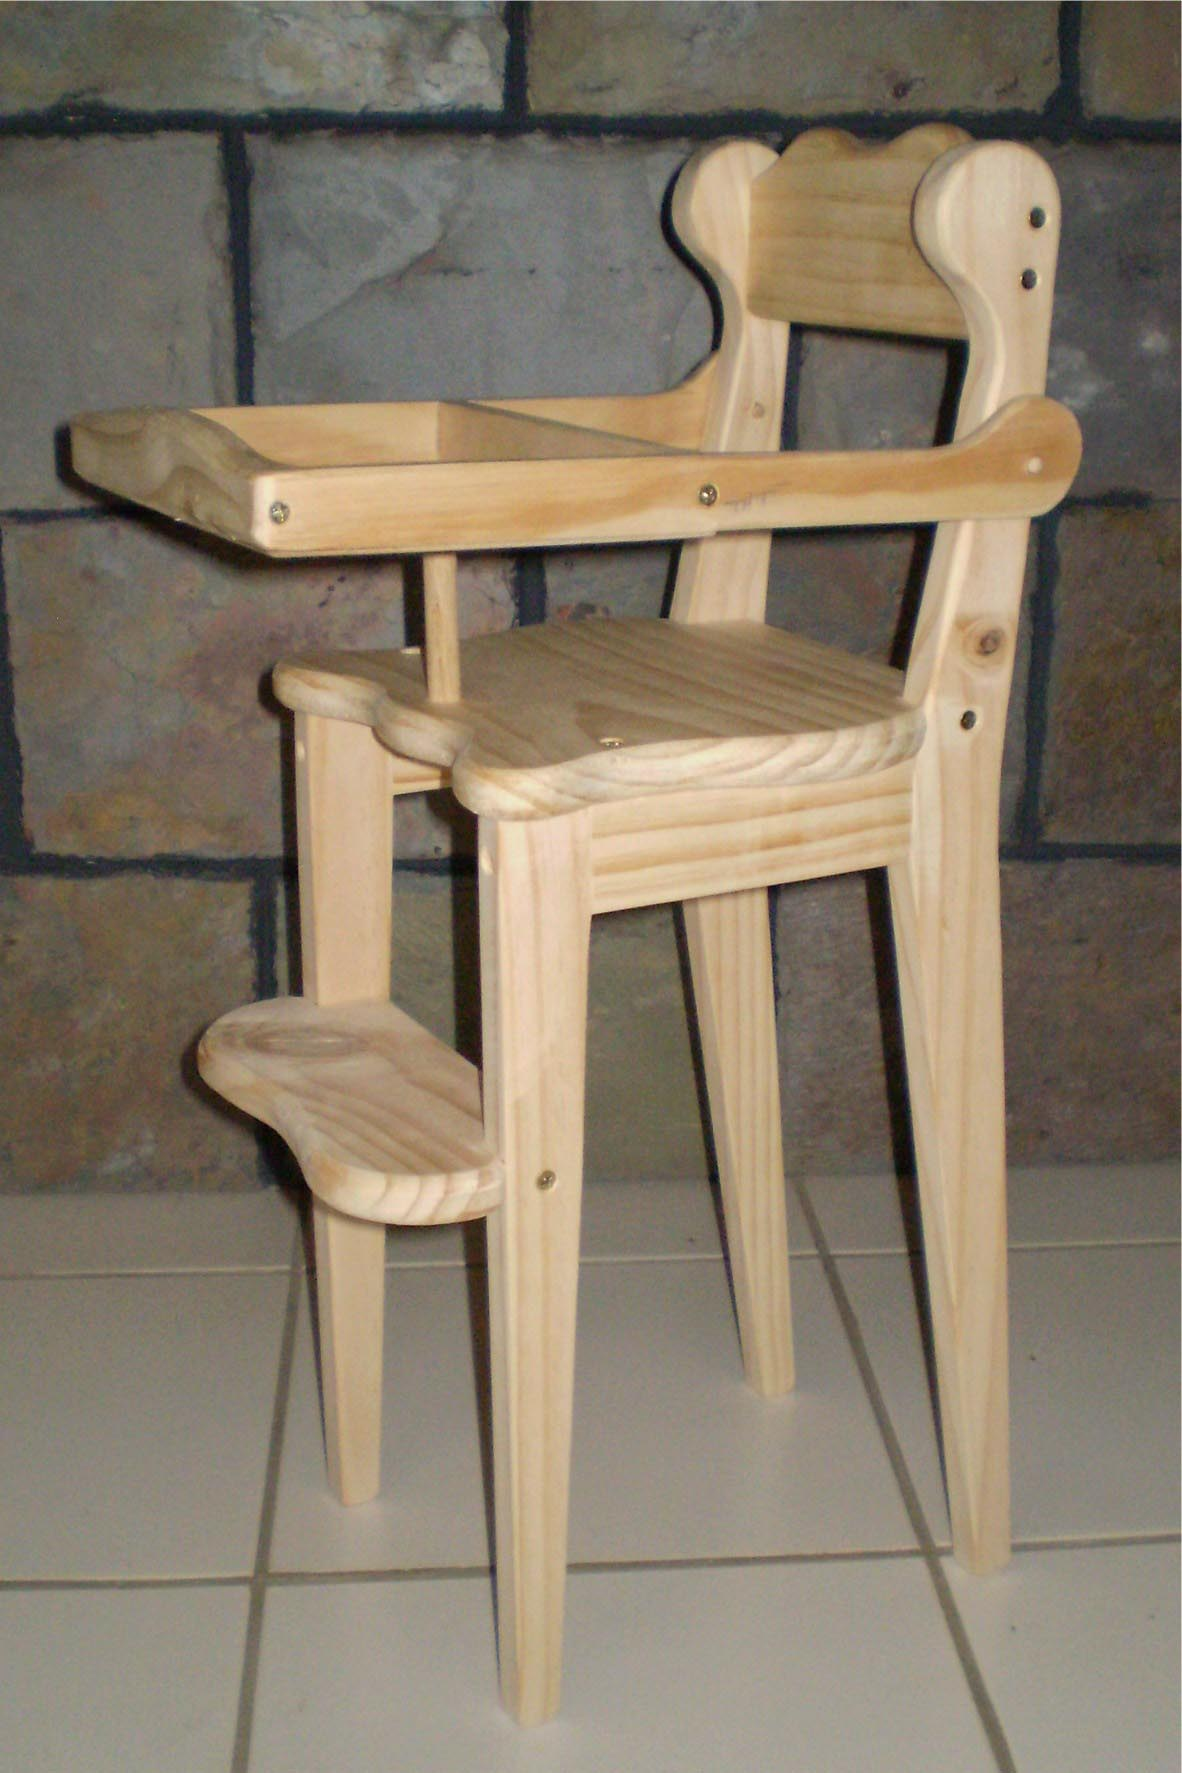 Toy High Chair plan and pattern